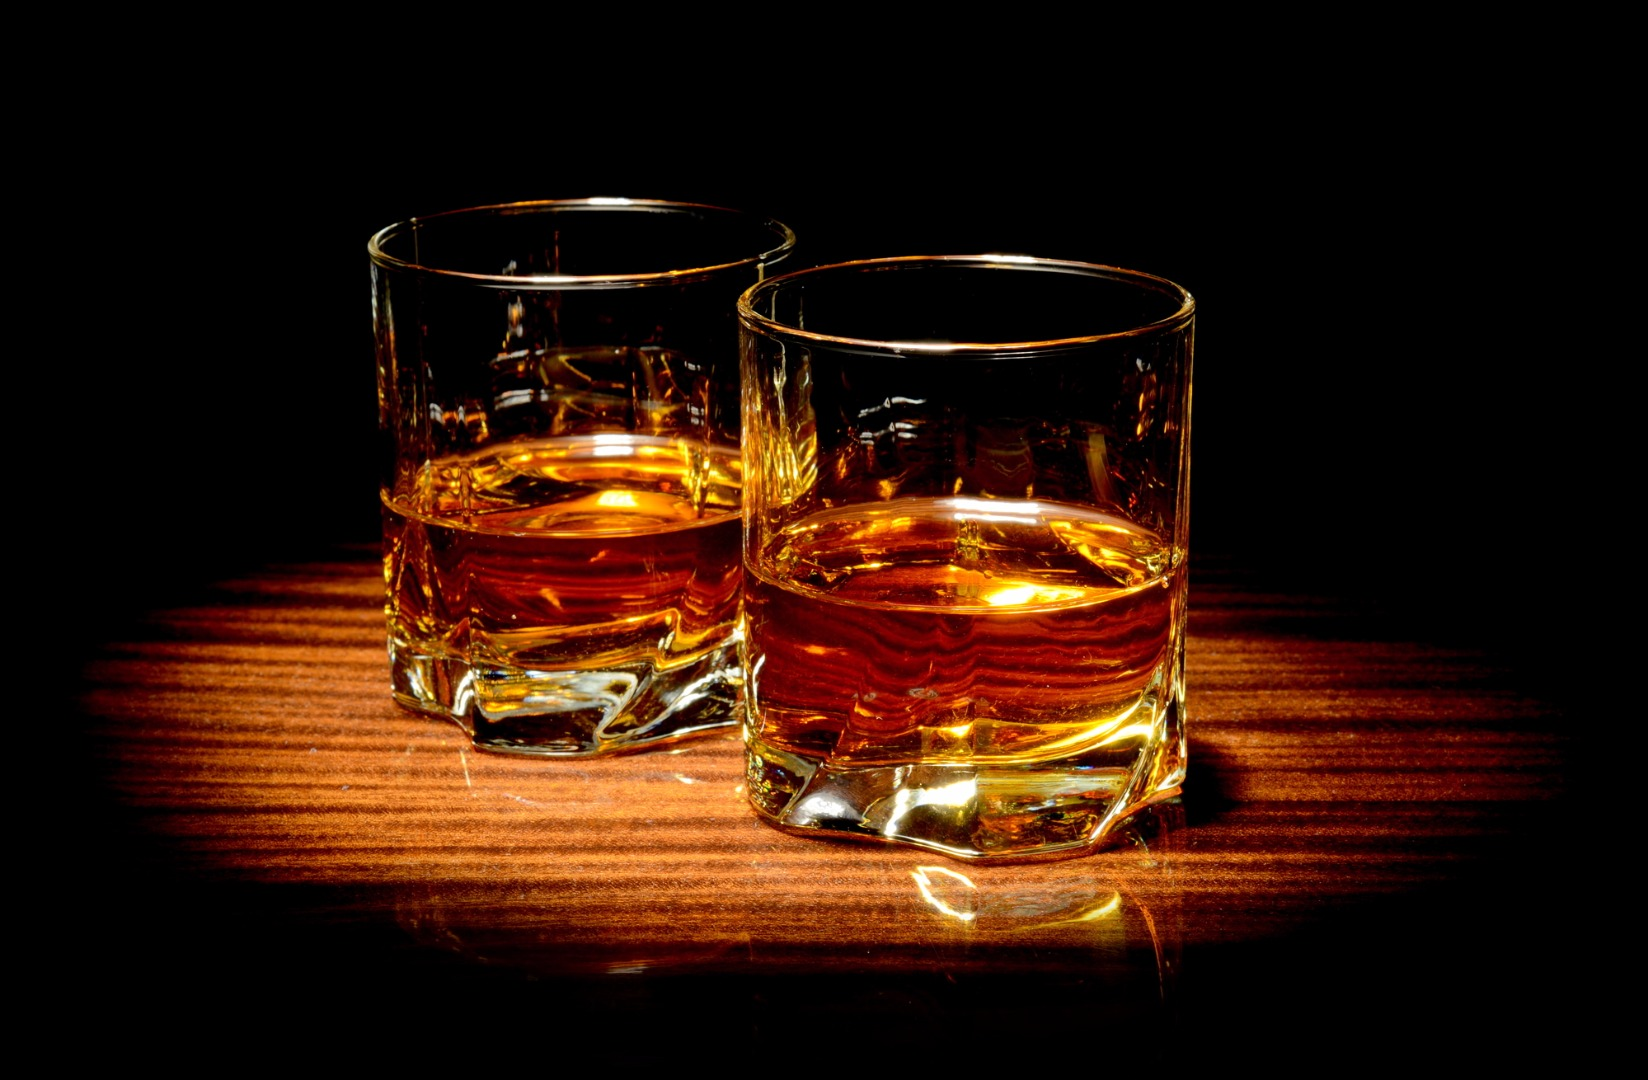 Why whisky tastes better with a wee drop of water